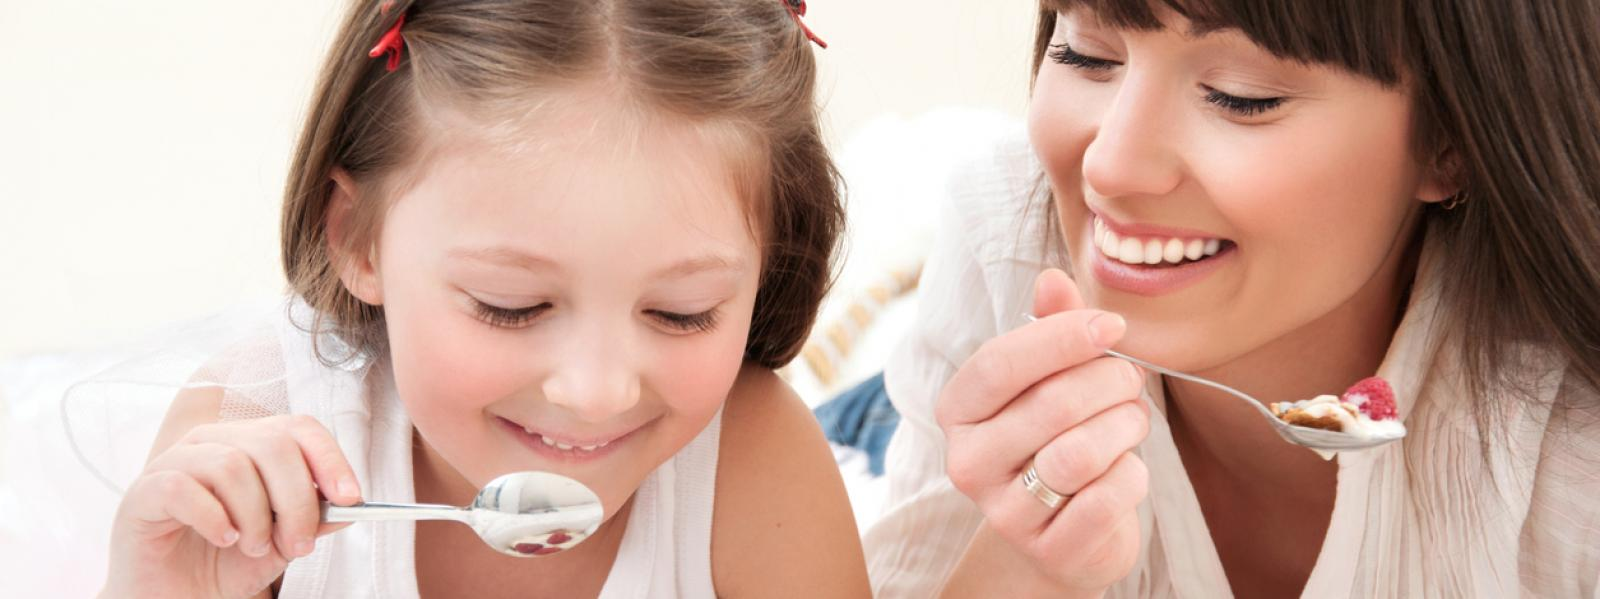 Static image of a mother and daughter smiling and eating yoghurt.